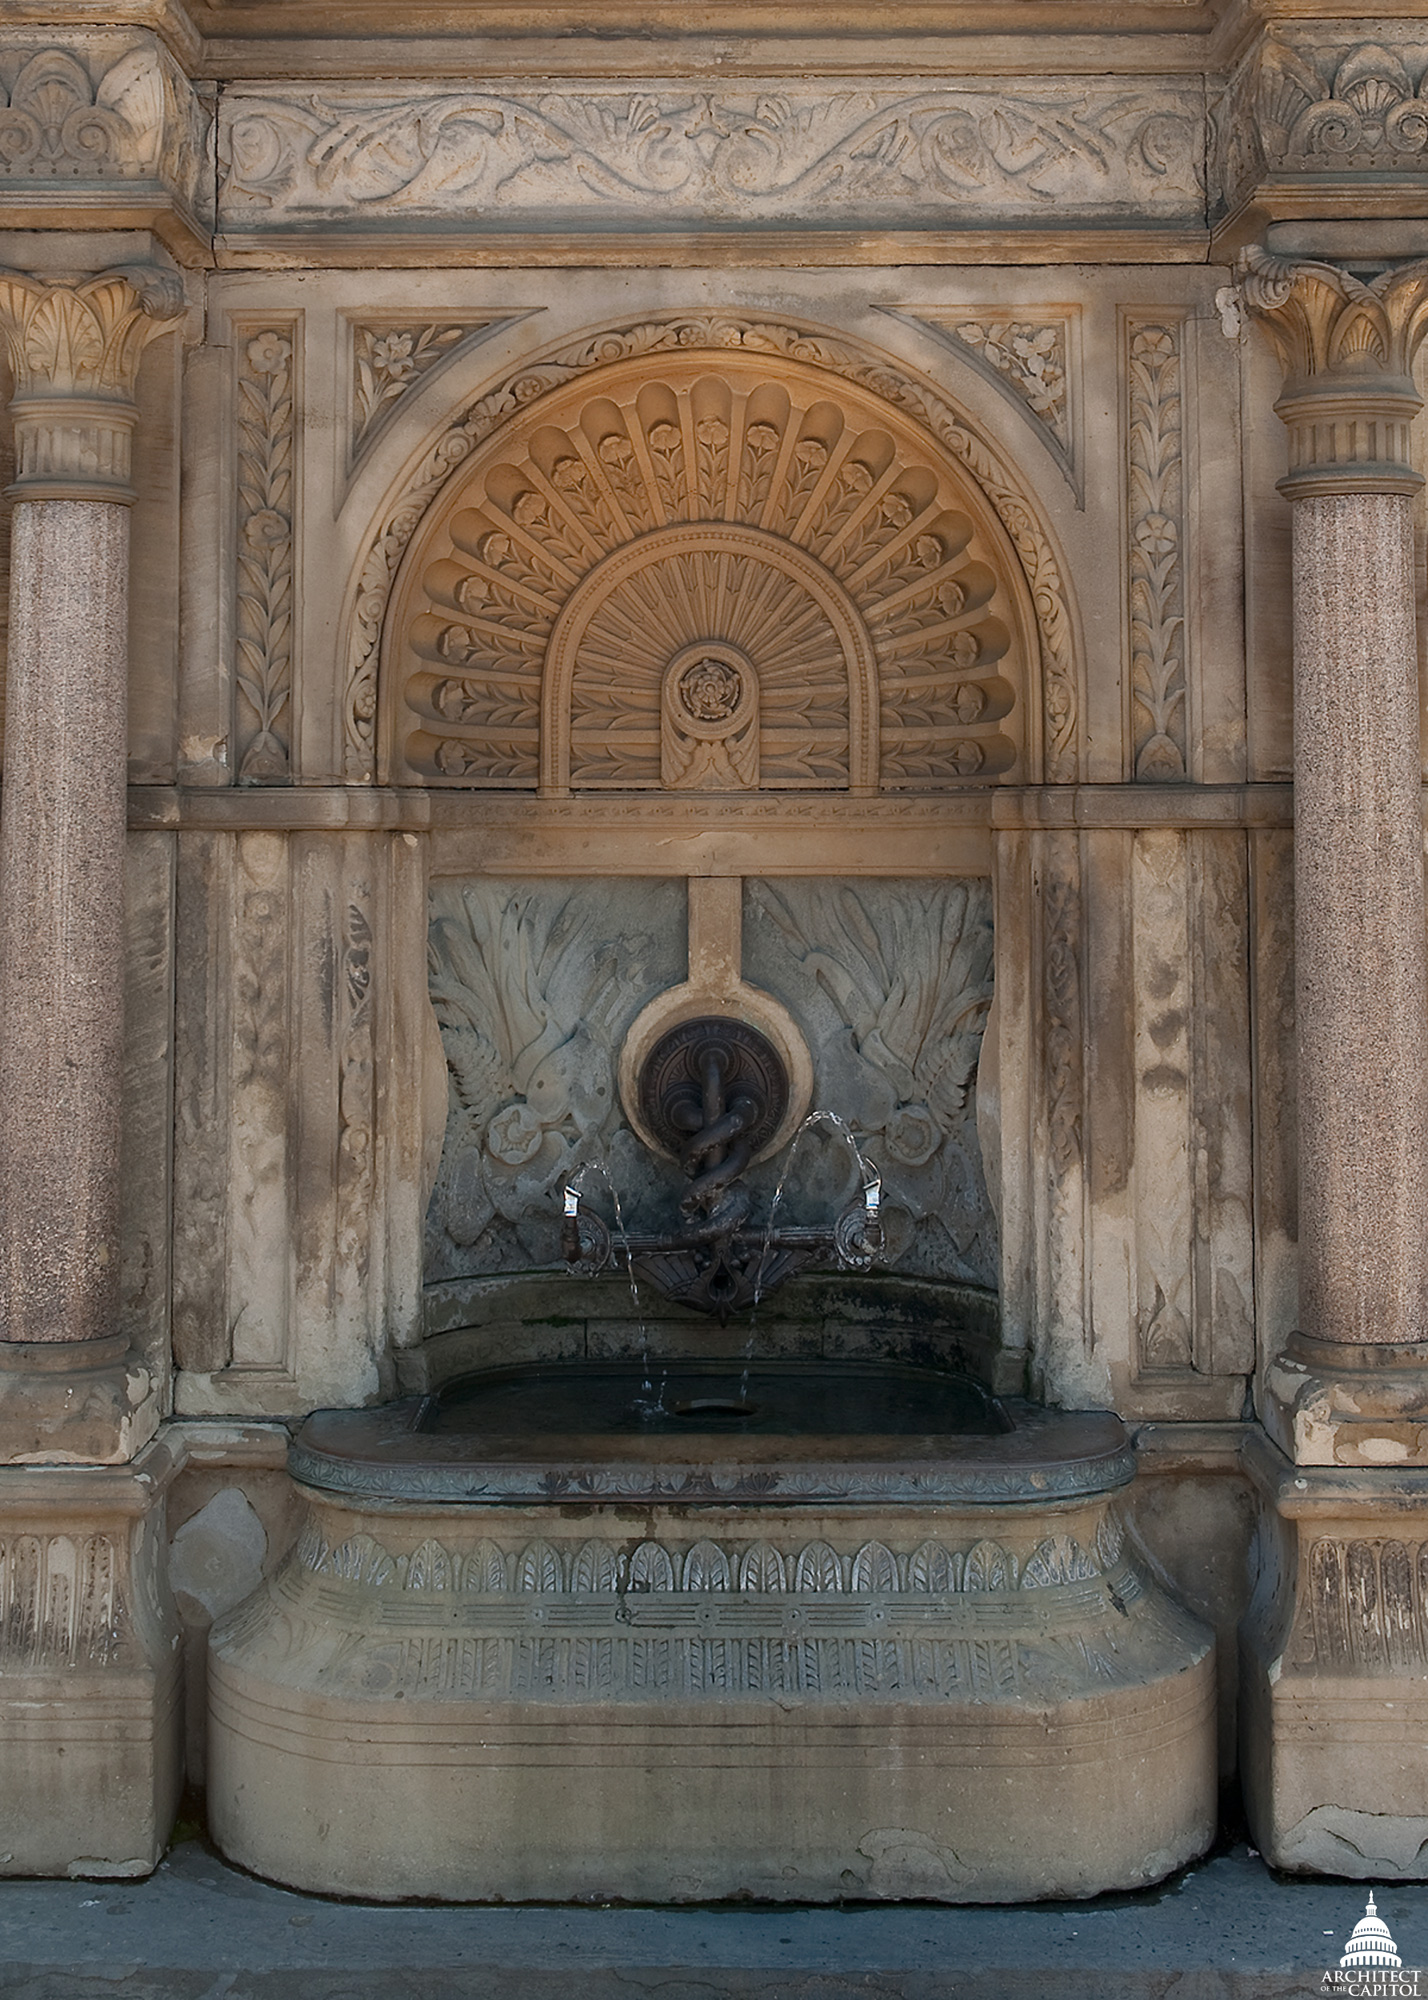 The central fountain in the perimeter wall surrounding Capitol Square.